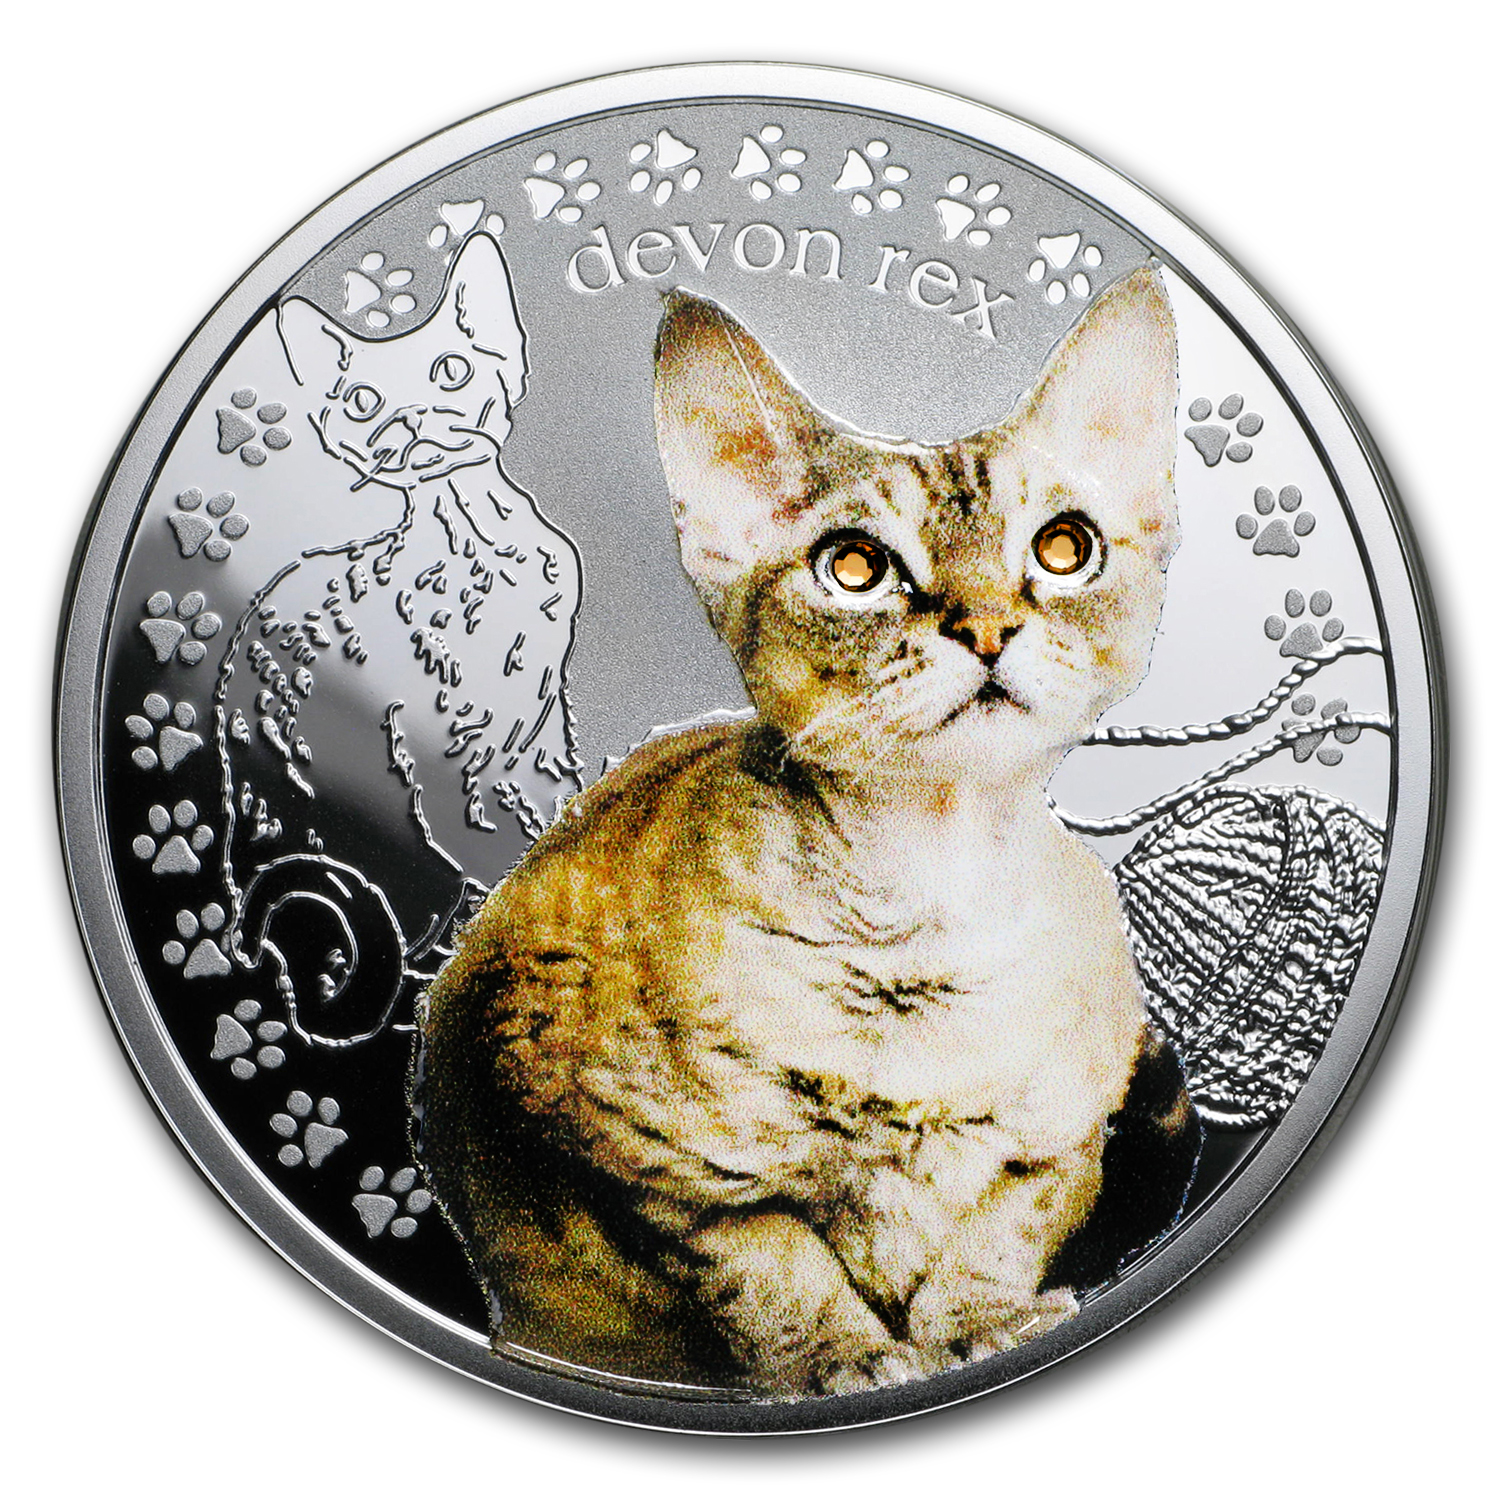 2016 Niue Proof Silver Man's Best Friends Cats Devon Rex